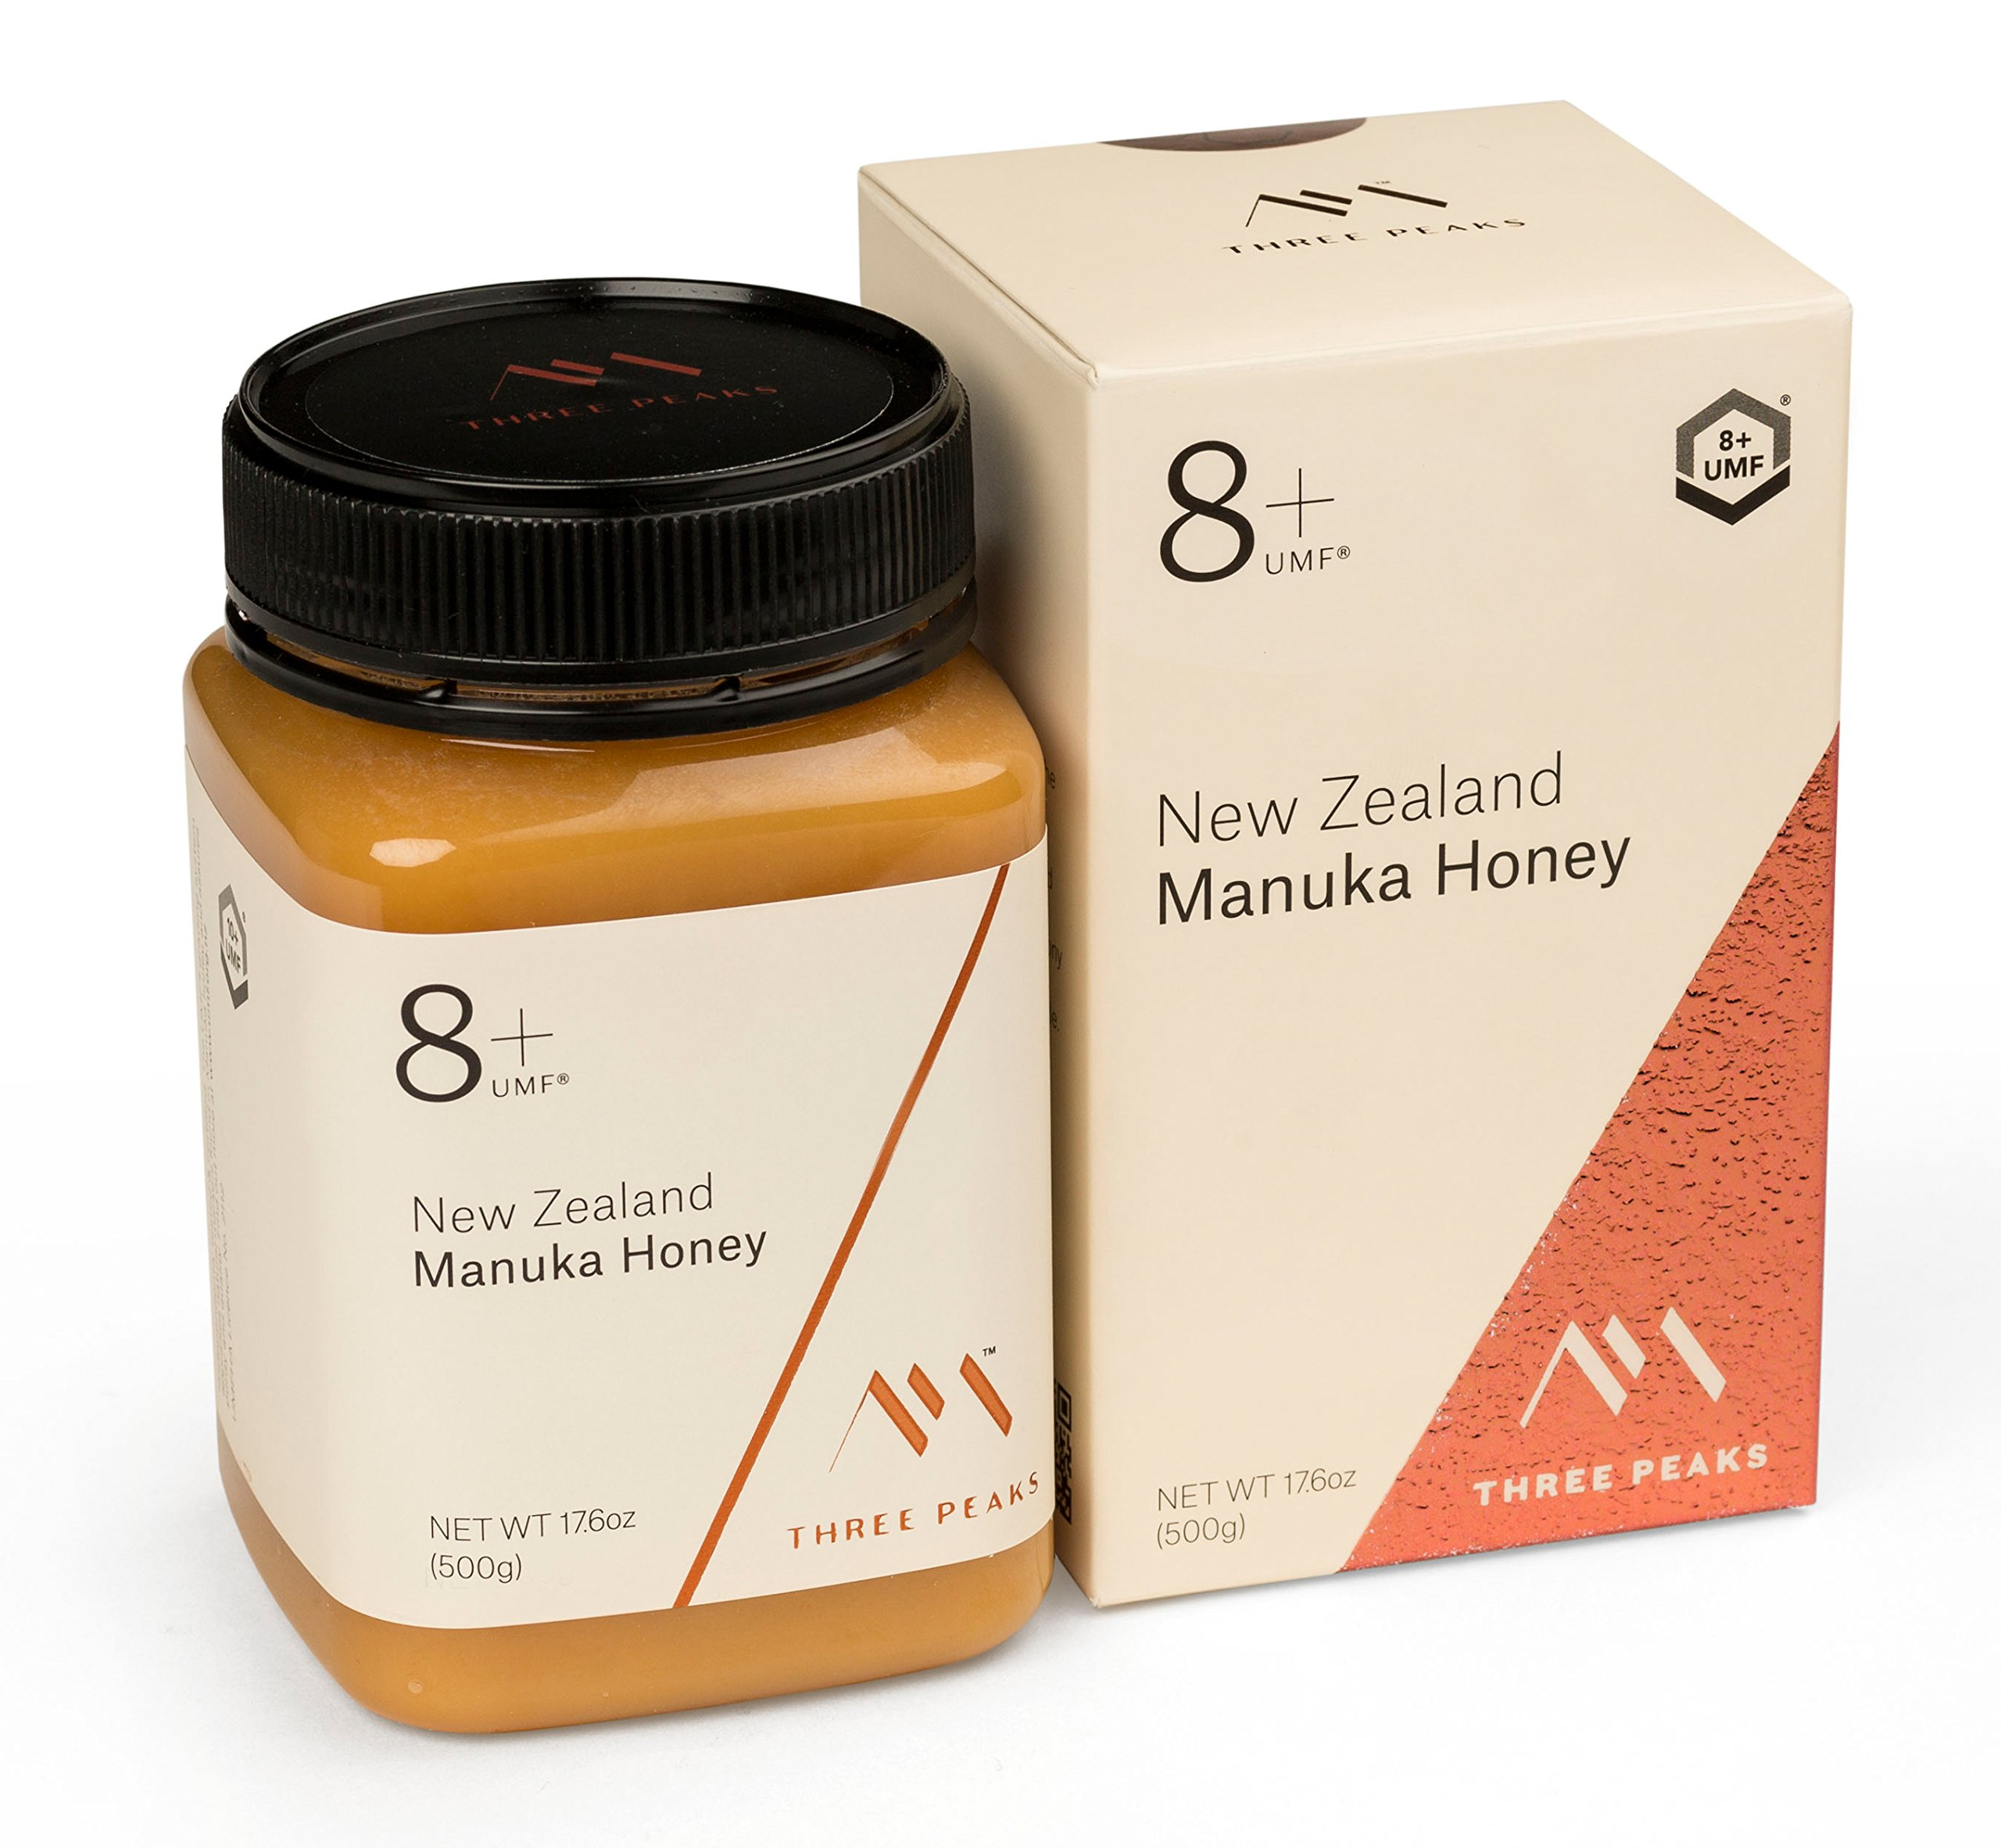 Three Peaks Manuka Honey New Zealand - Certified UMF 8+ - 17.6 oz (500gm) - 100% Natural honey, Raw honey – Ultra Premium, Healing Manuka honey